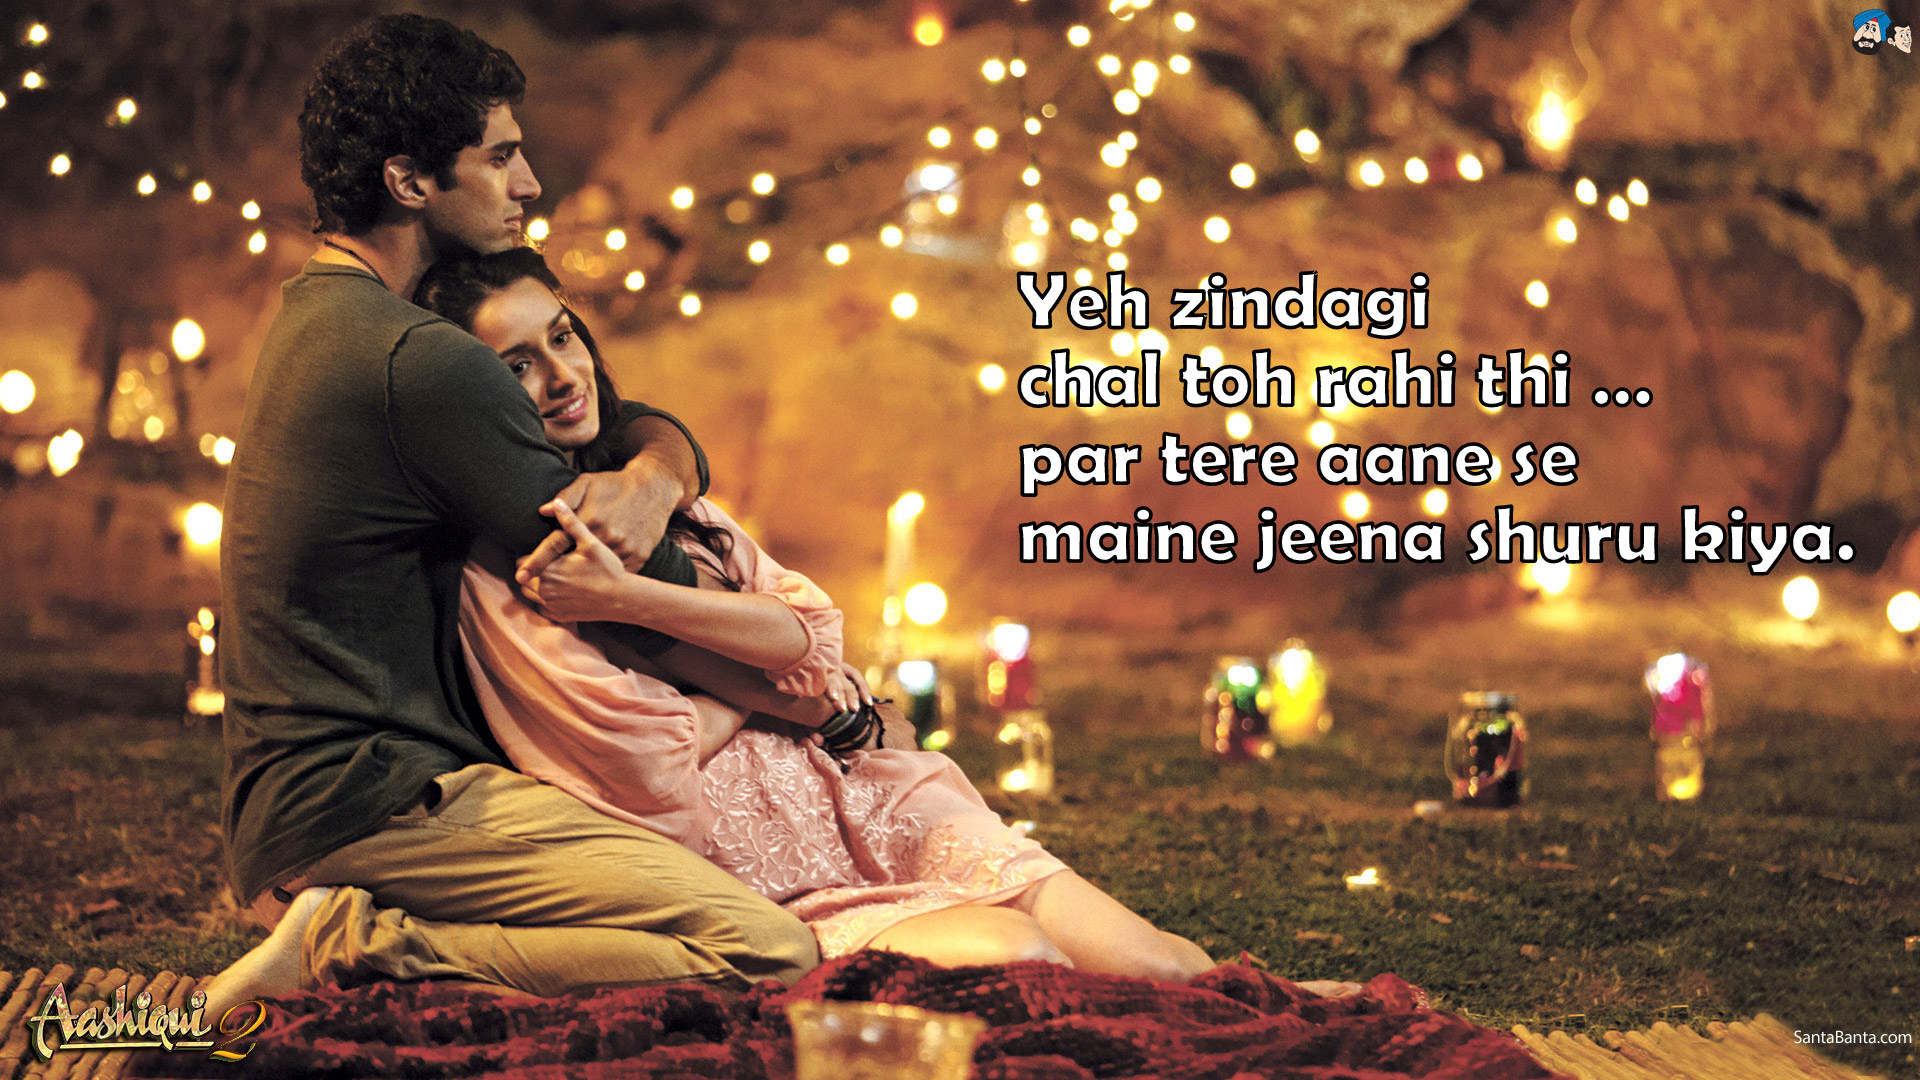 love dialogues from some Bollywood movies… Aashiqui 2